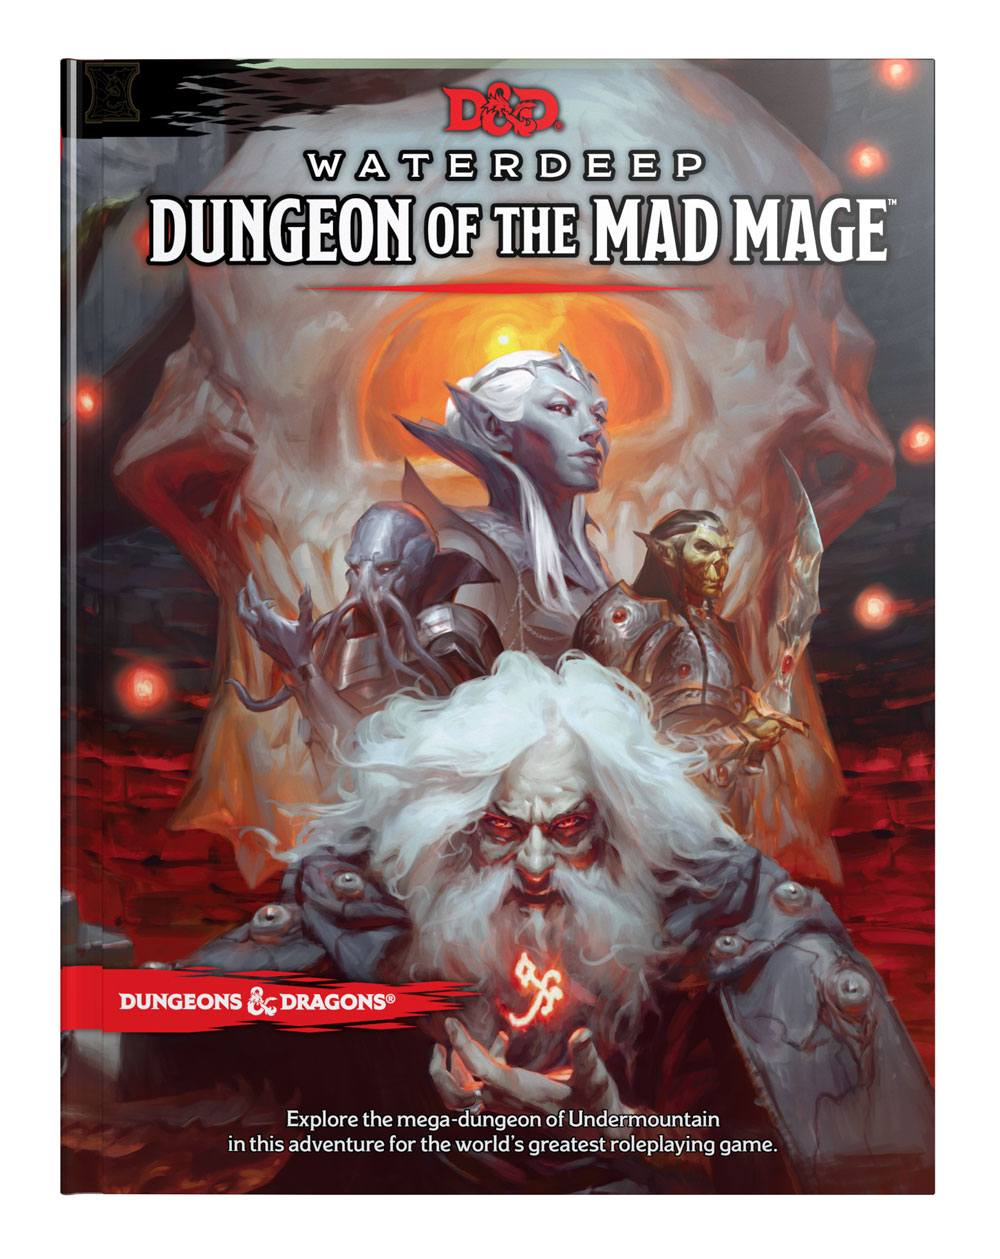 Dungeons & Dragons RPG Adventure Waterdeep: Dungeon of the Mad Mage